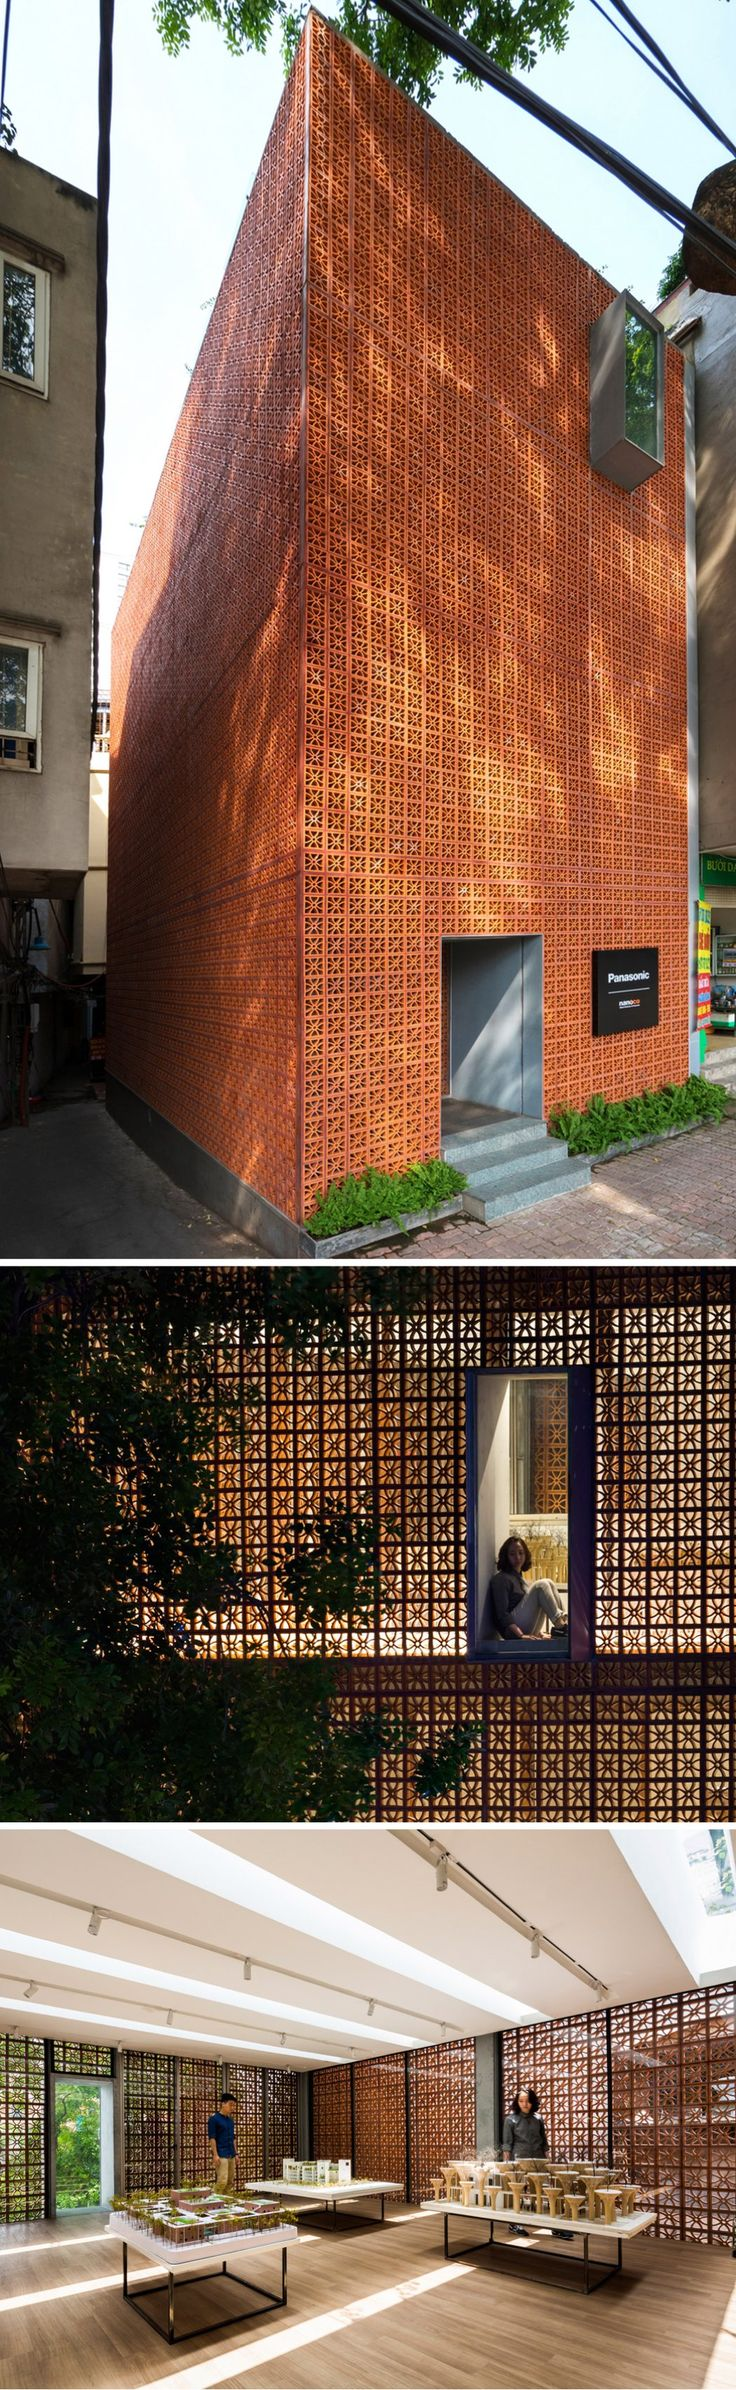 Panasonic showroom in Vietnam uses a perforated terracotta façade to create a simple yet significant impact on the surrounding landscape.